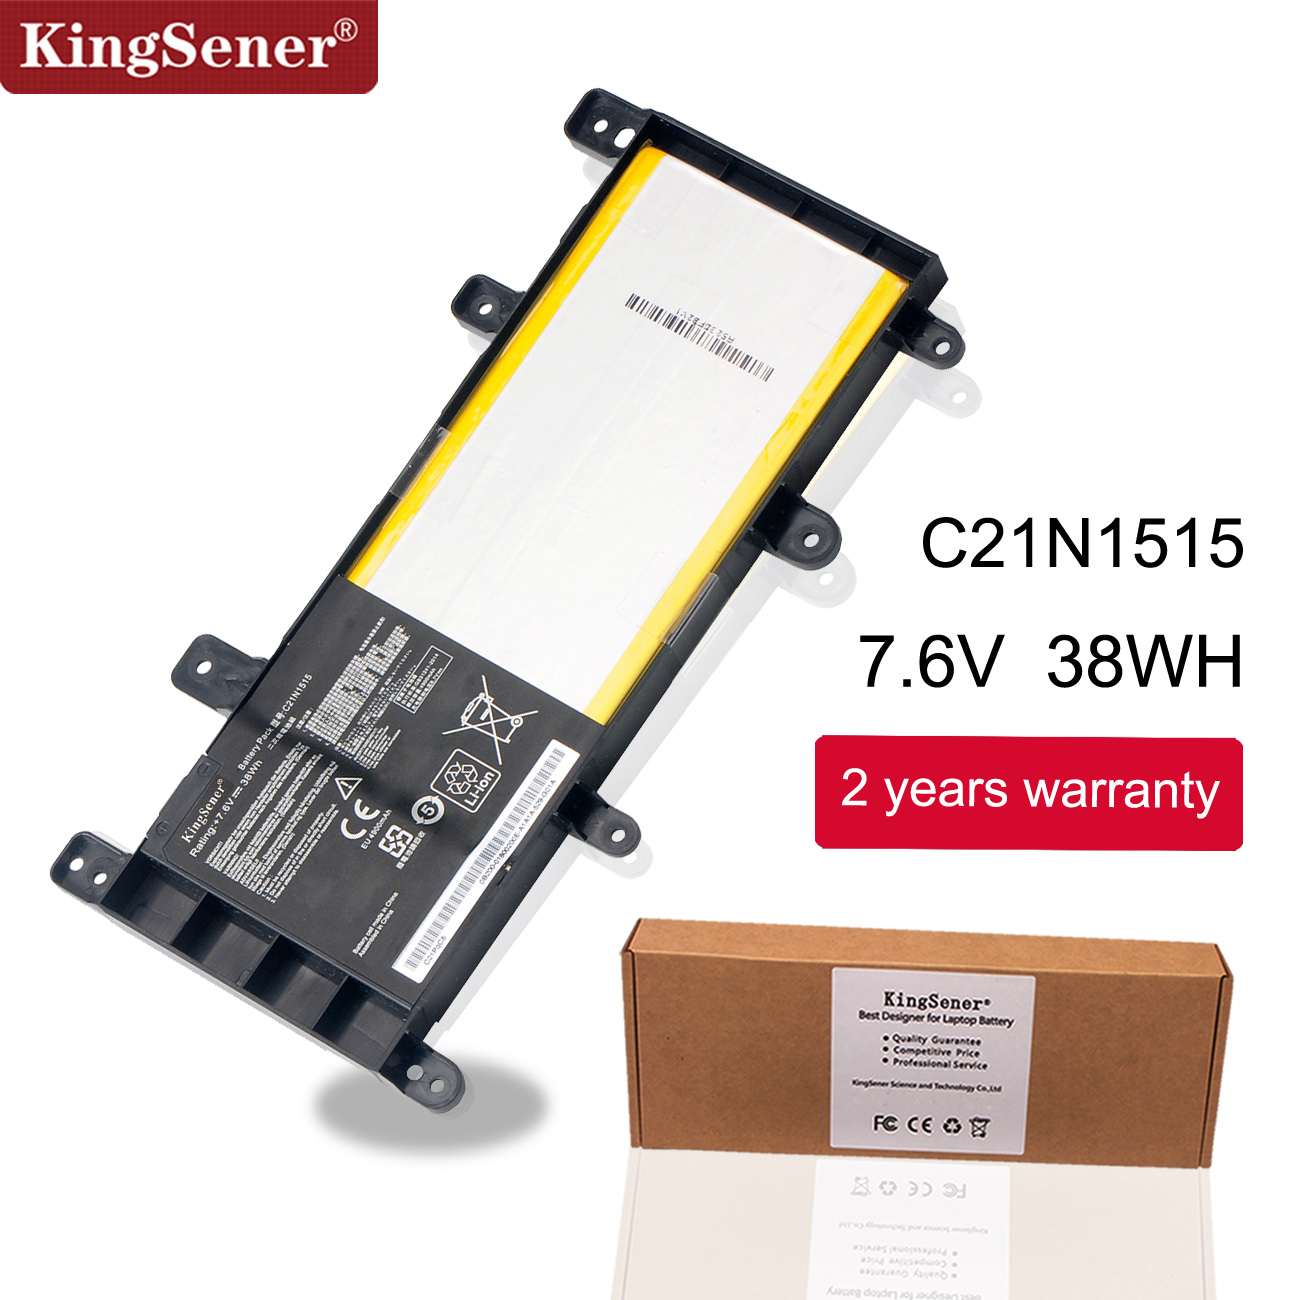 KingSener C21N1515 Laptop Battery For ASUS VivoBook X756 X756UA X756UJ X756UX X756UB X756UQ X756UV X756UW 7.6V 38WH